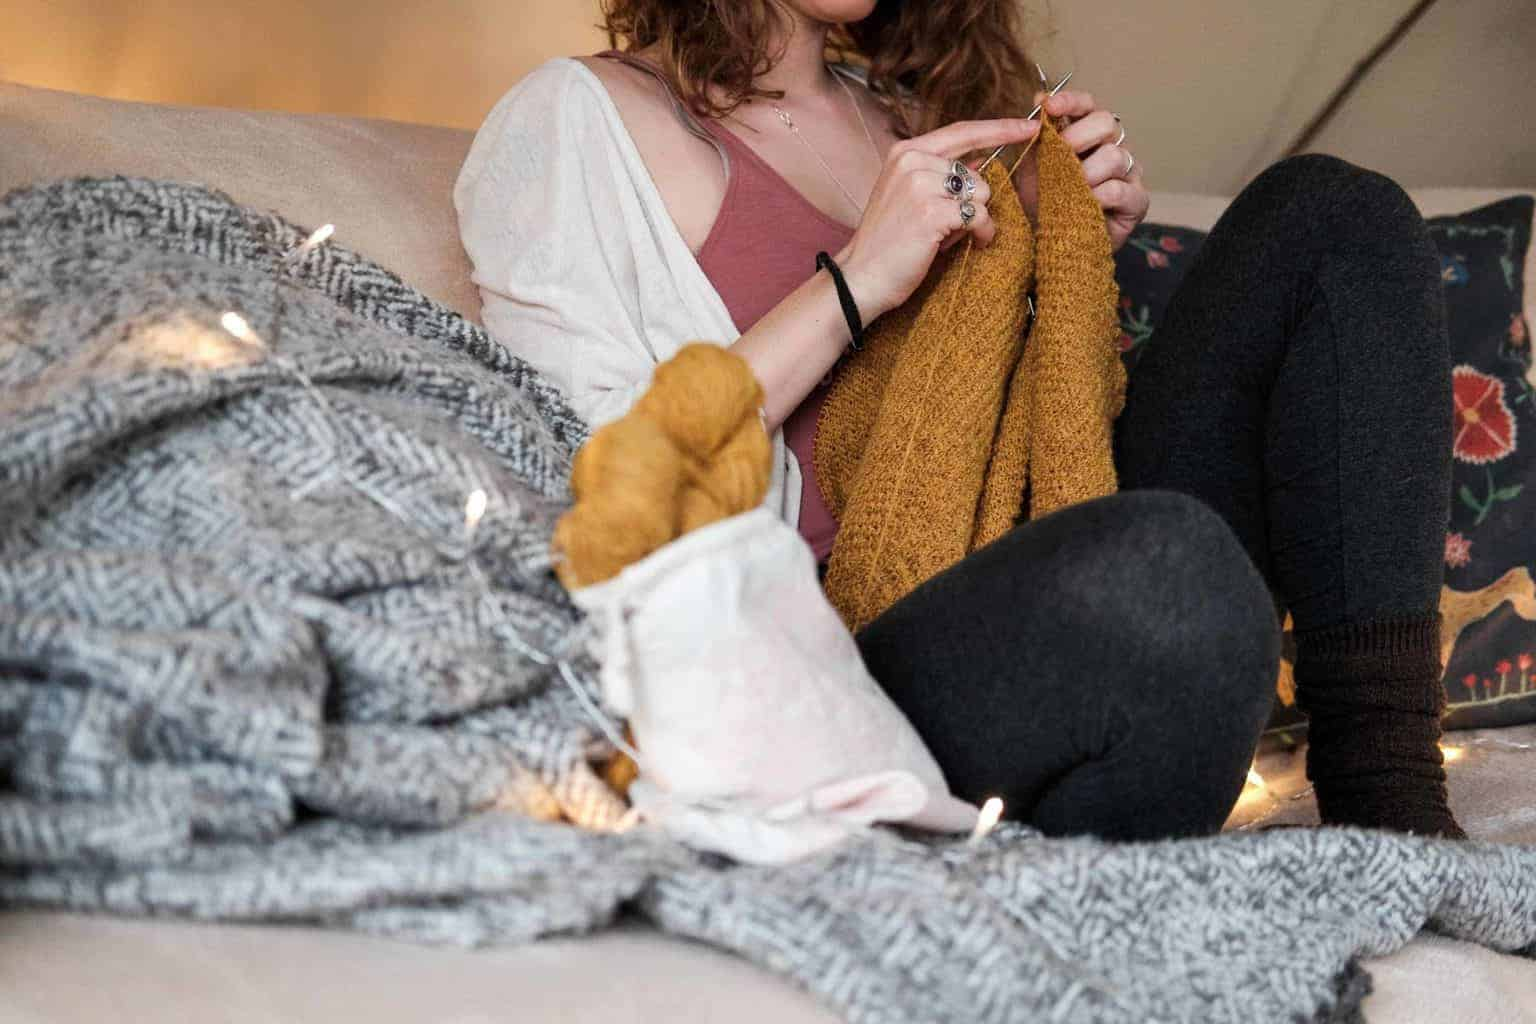 Woman sitting on couch crocheting